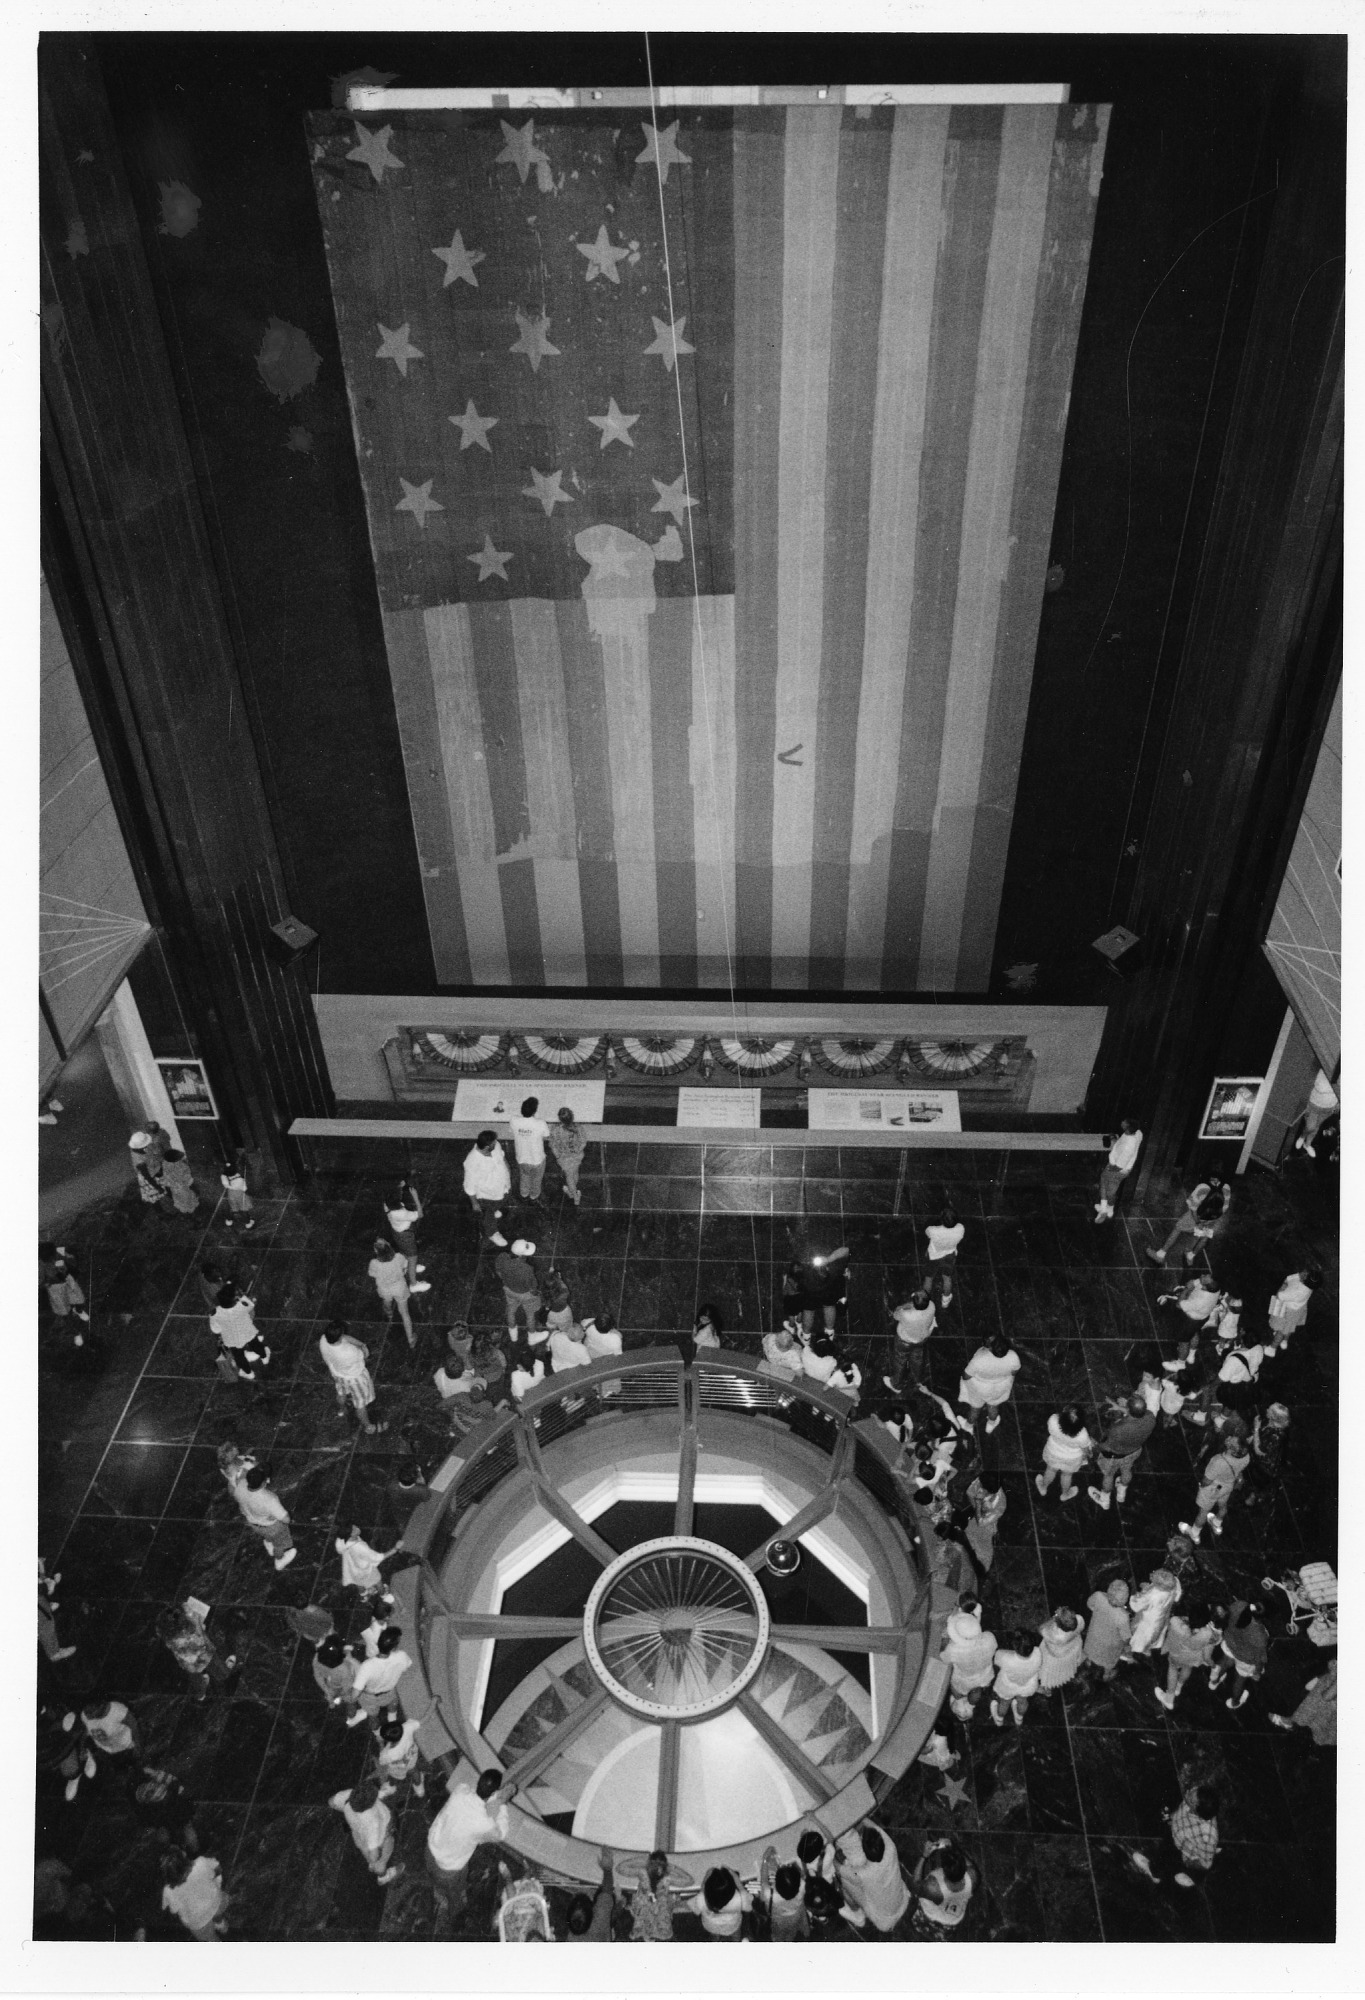 Foucault Pendulum and the Star-Spangled Banner